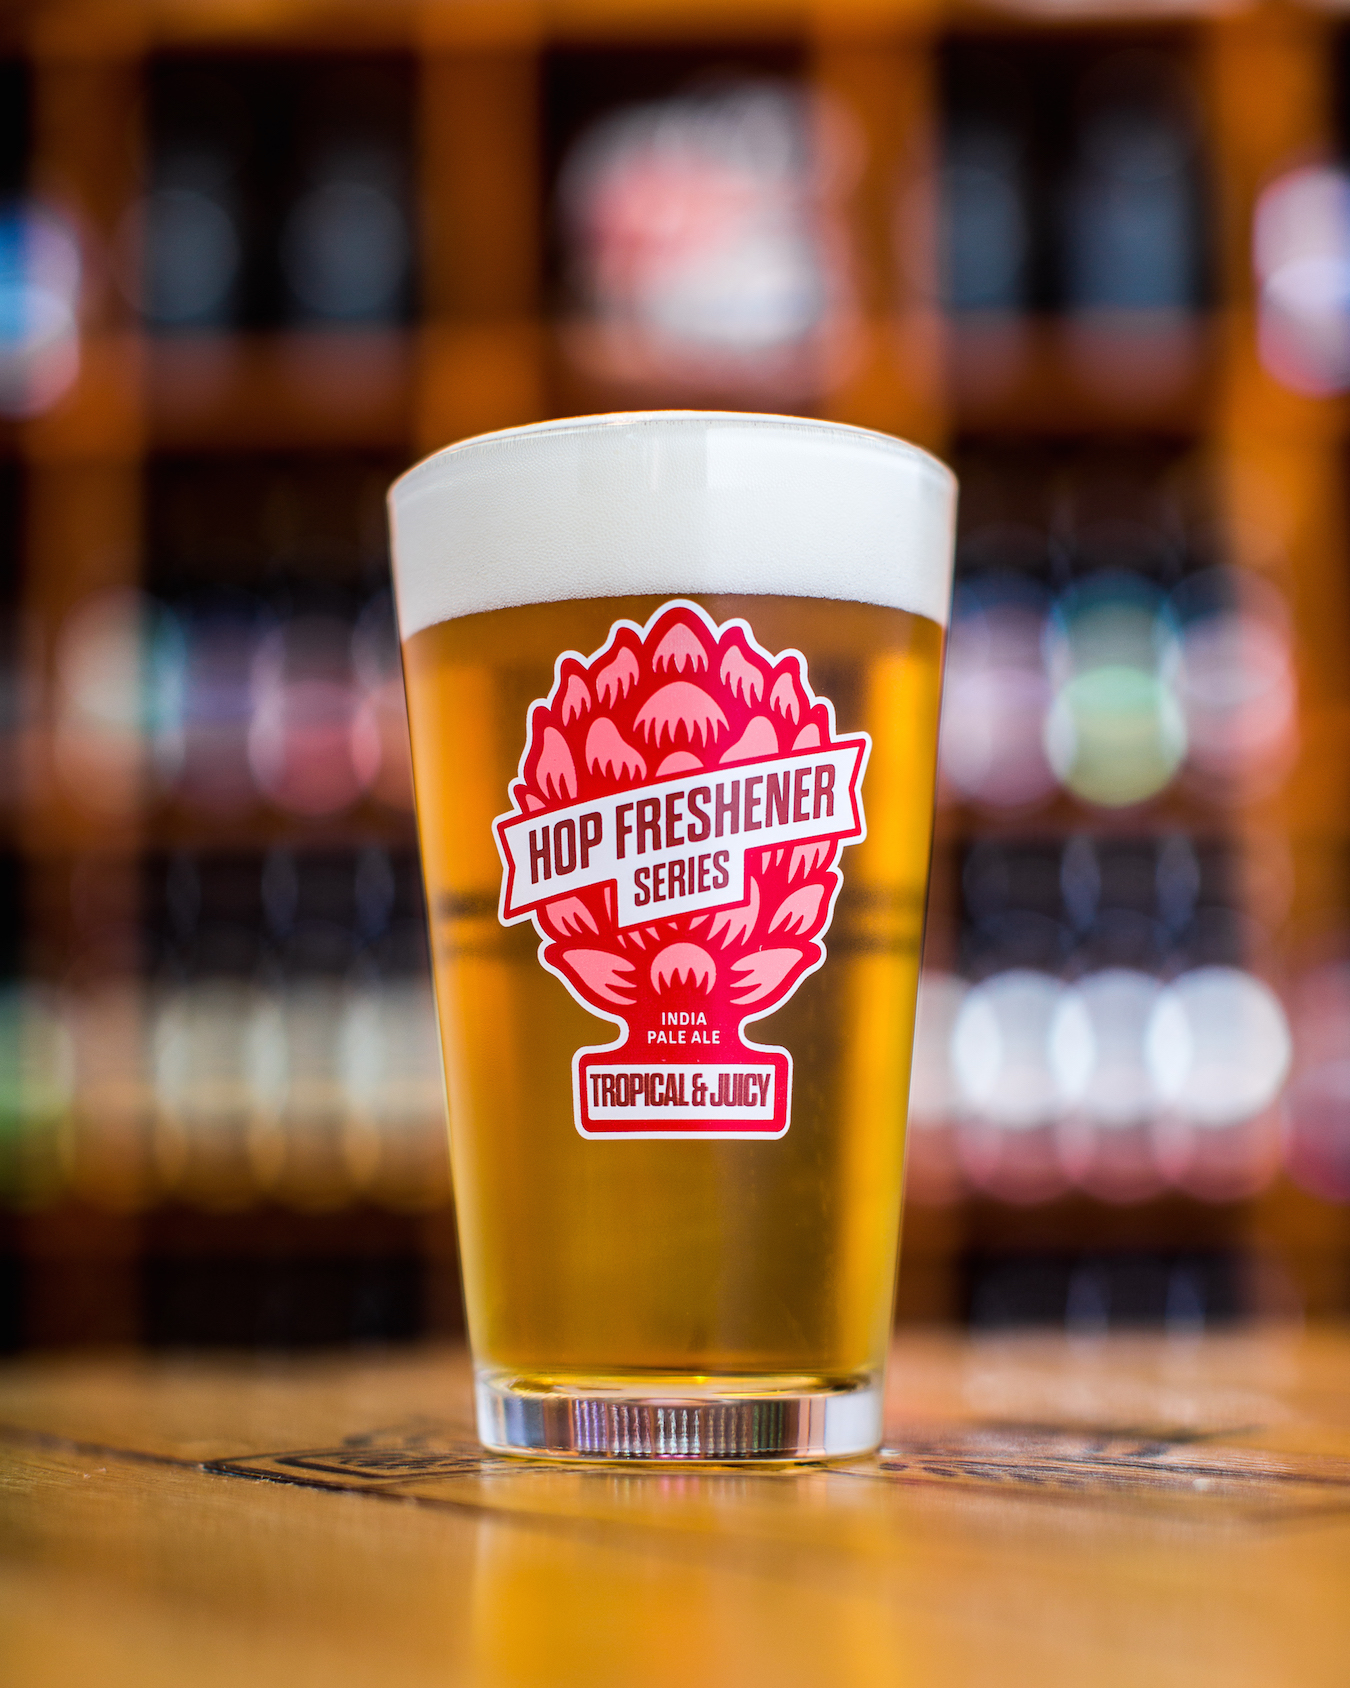 The Hop Concept Hop Freshener Series Tropical & Juicy Pint Glass